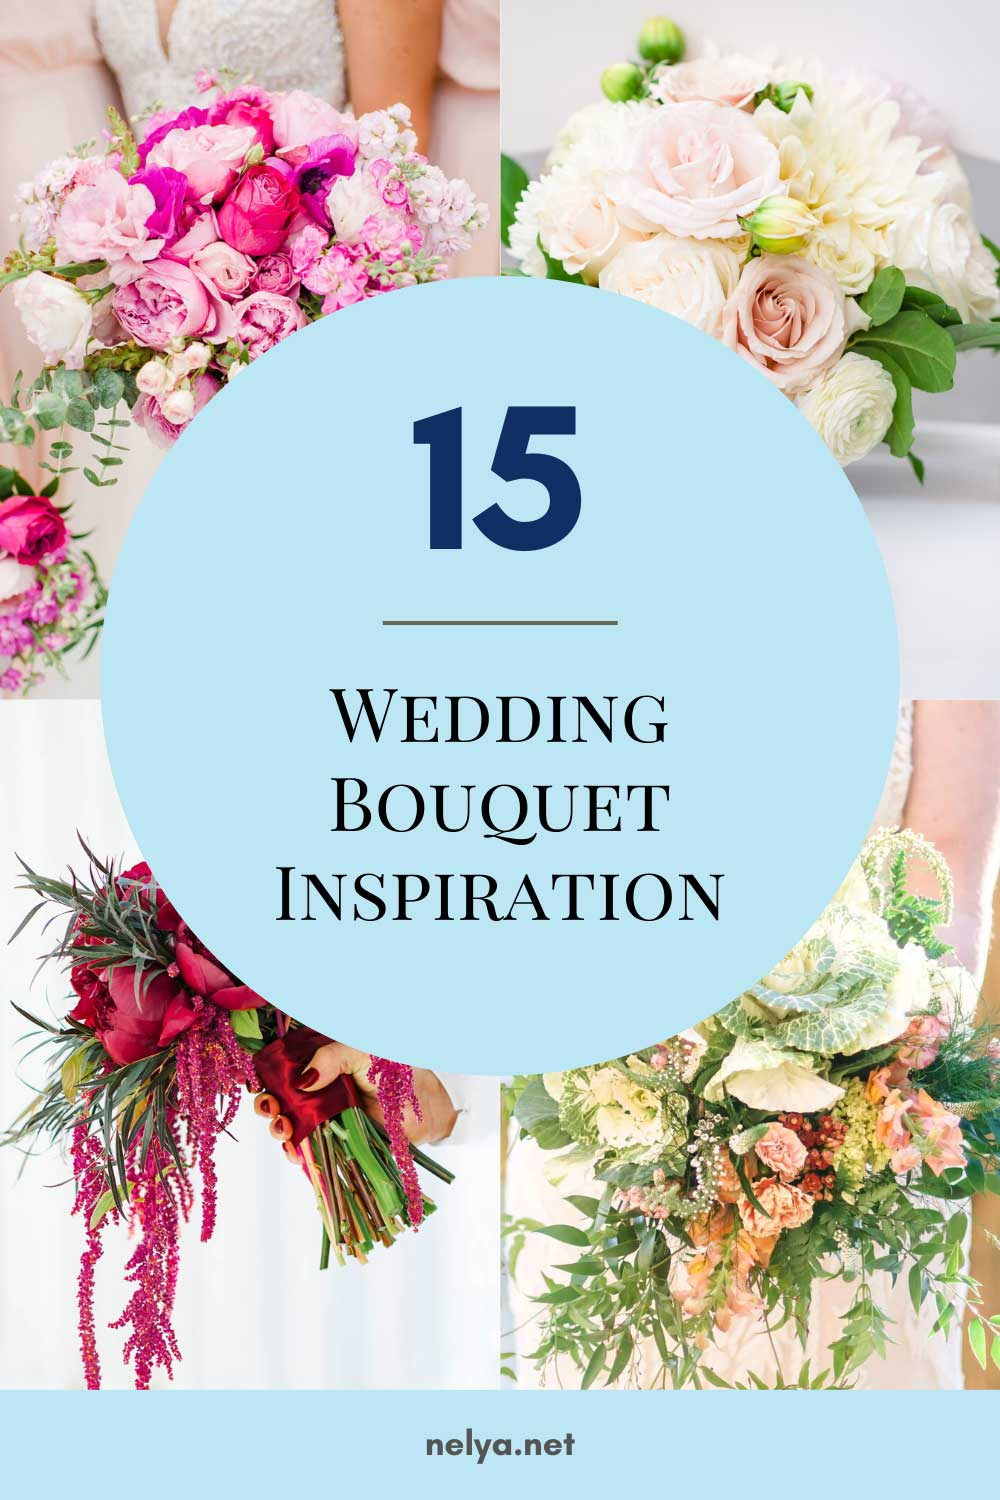 15 wedding bouquets for inspiration